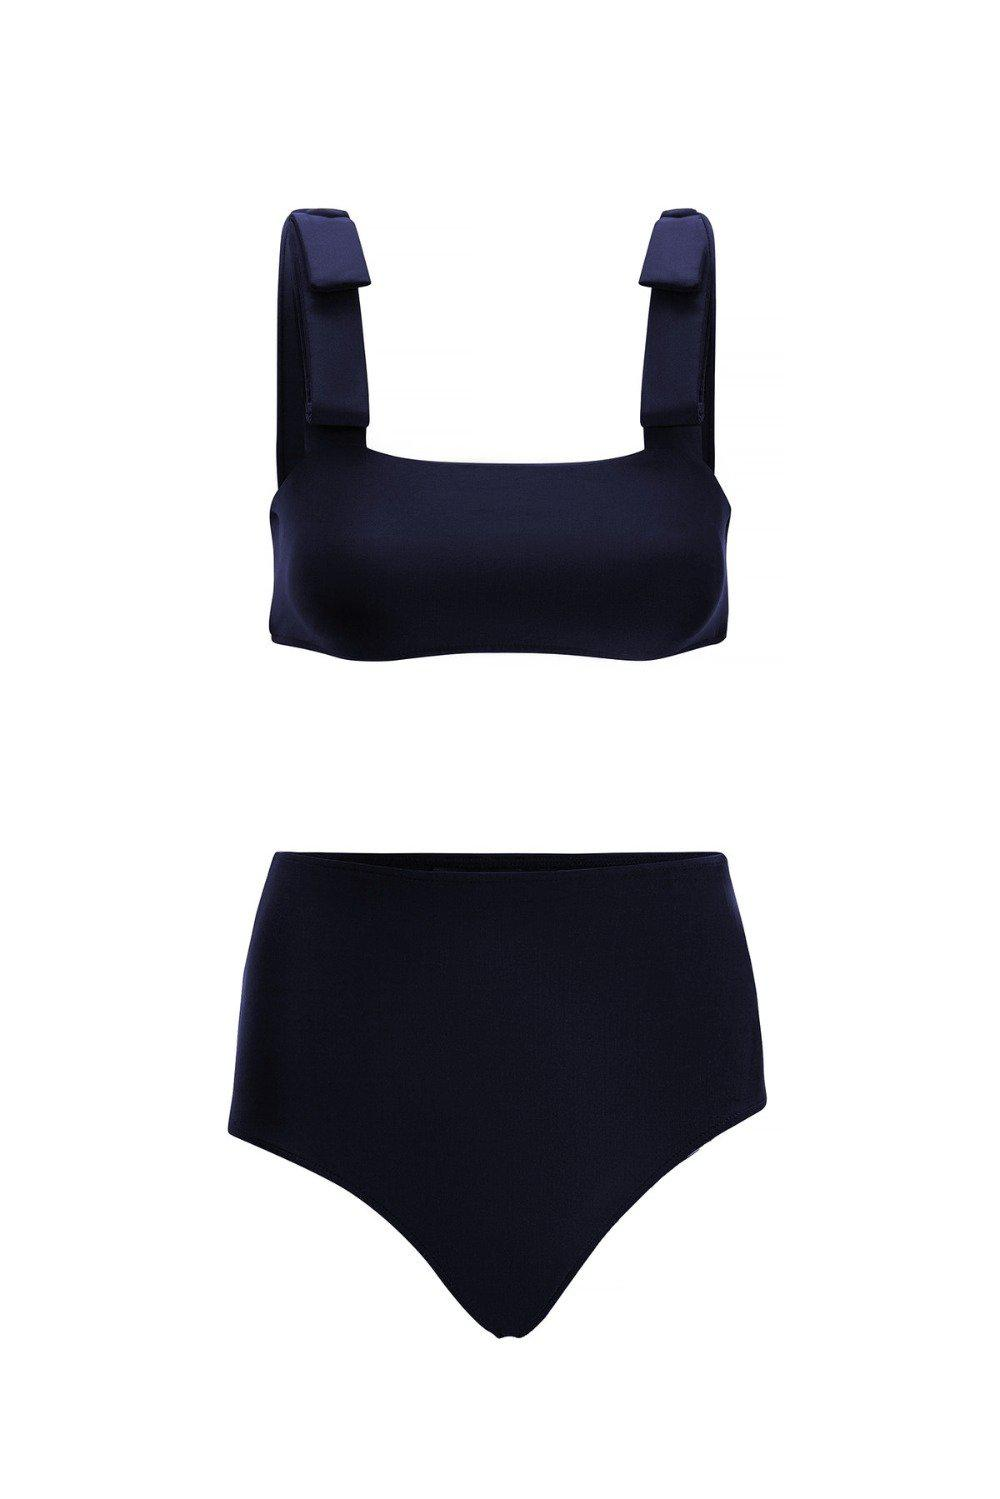 Fiore Solid Hot Pants Bikini with Straps 2